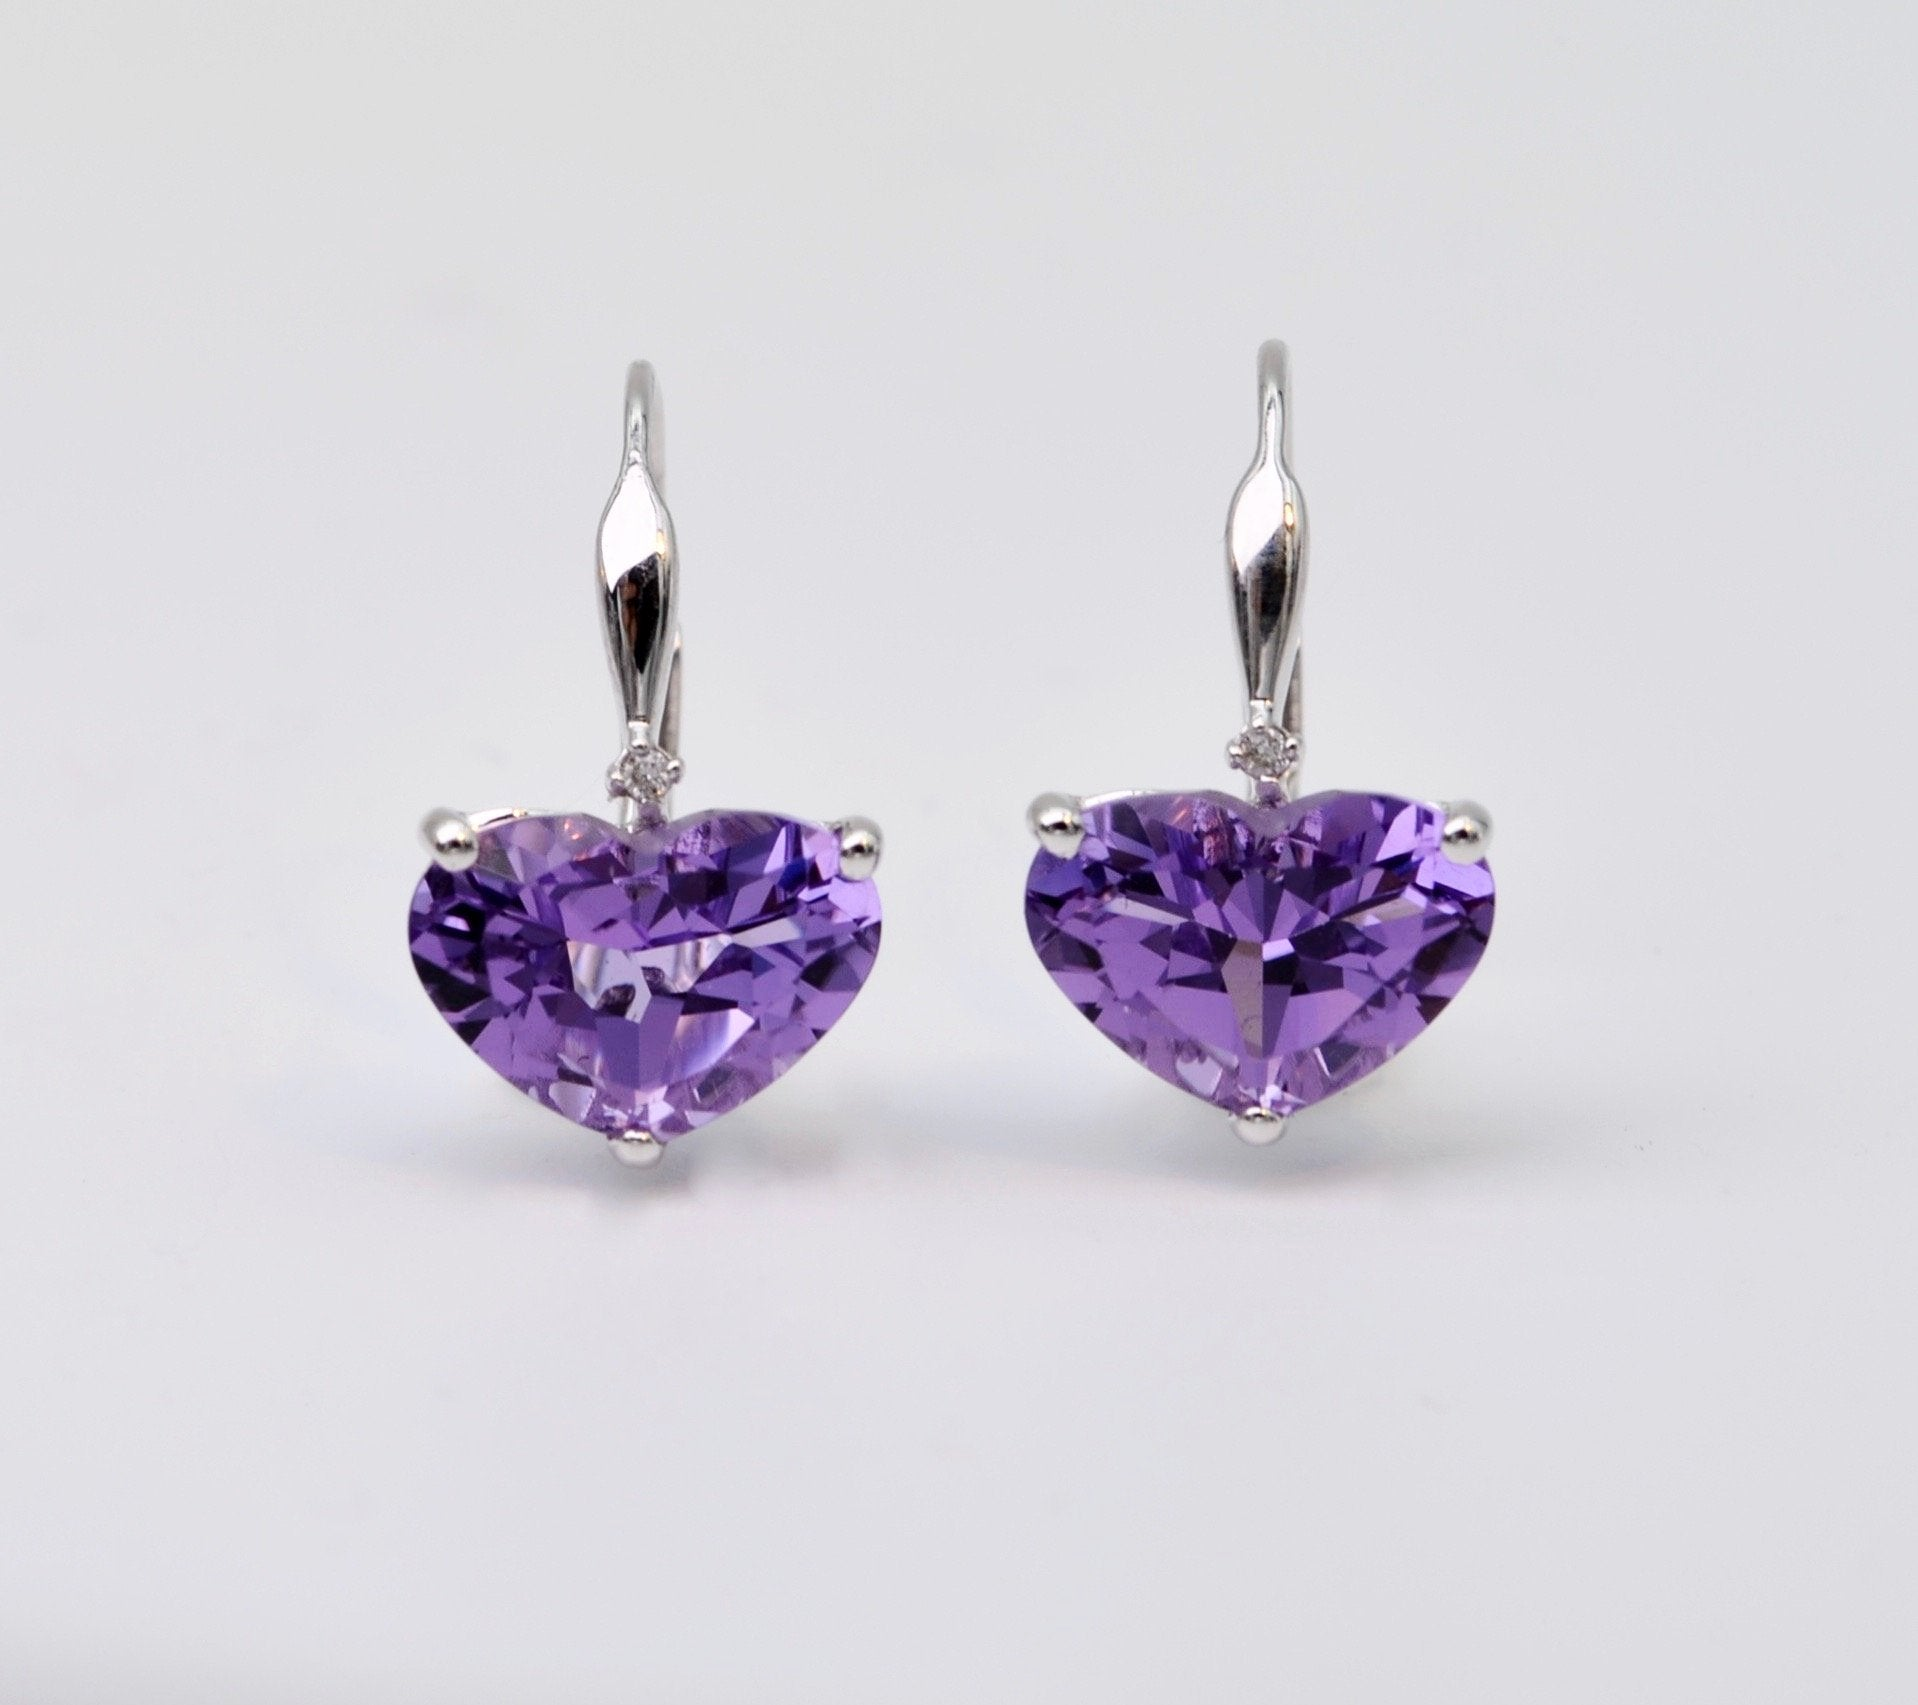 heart shaped earrings sterling silver p shane co m amethyst in